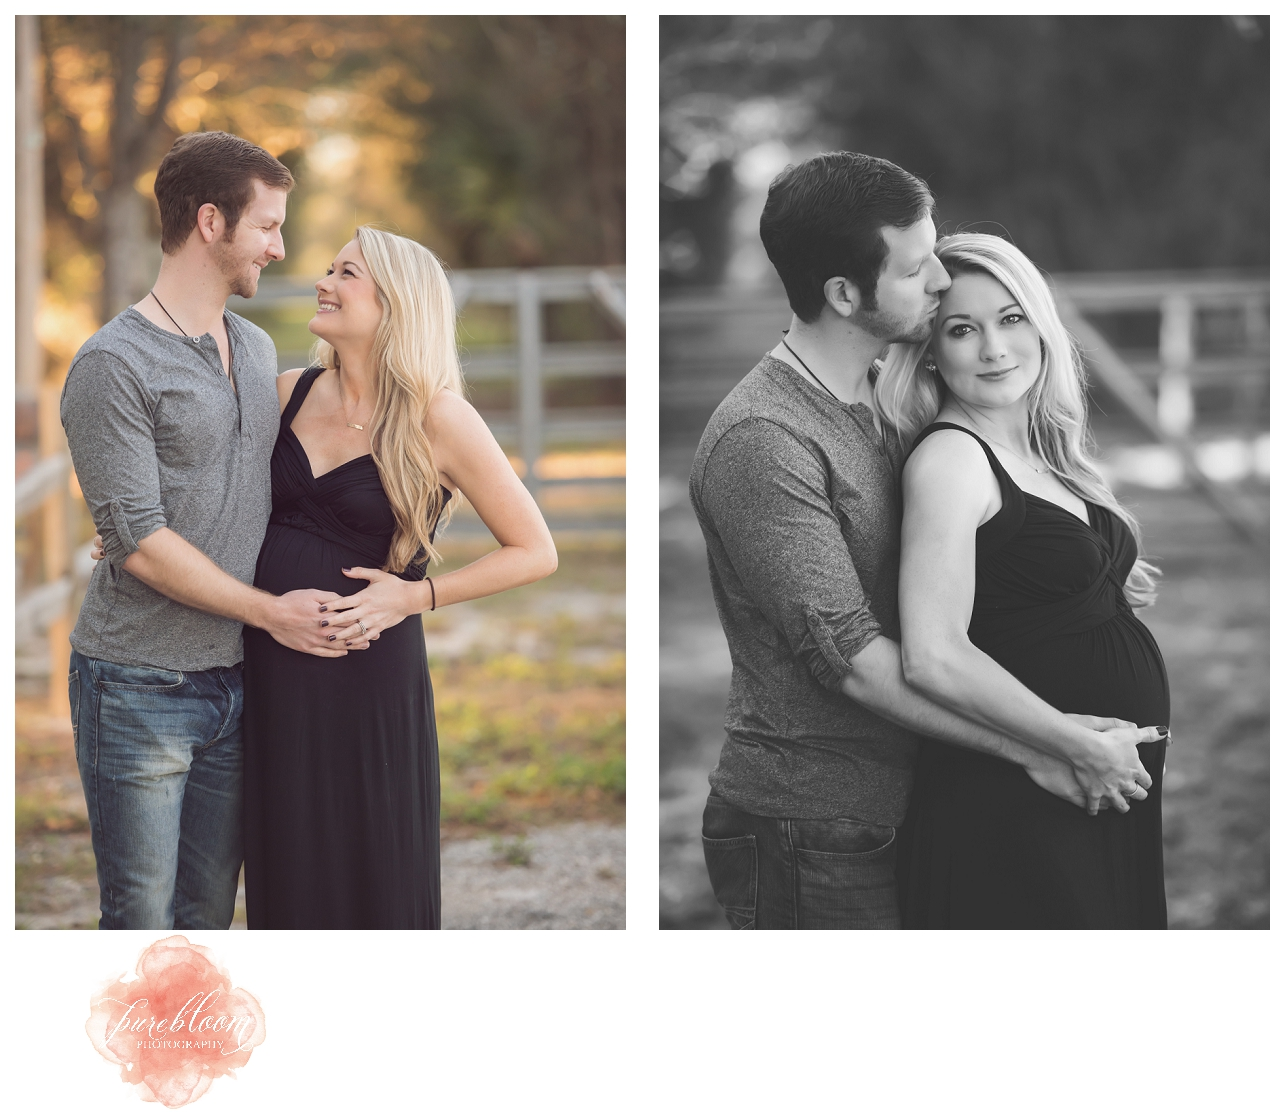 Tampa outdoor Maternity Photographer | Pure Bloom Photography|Amber and Tom